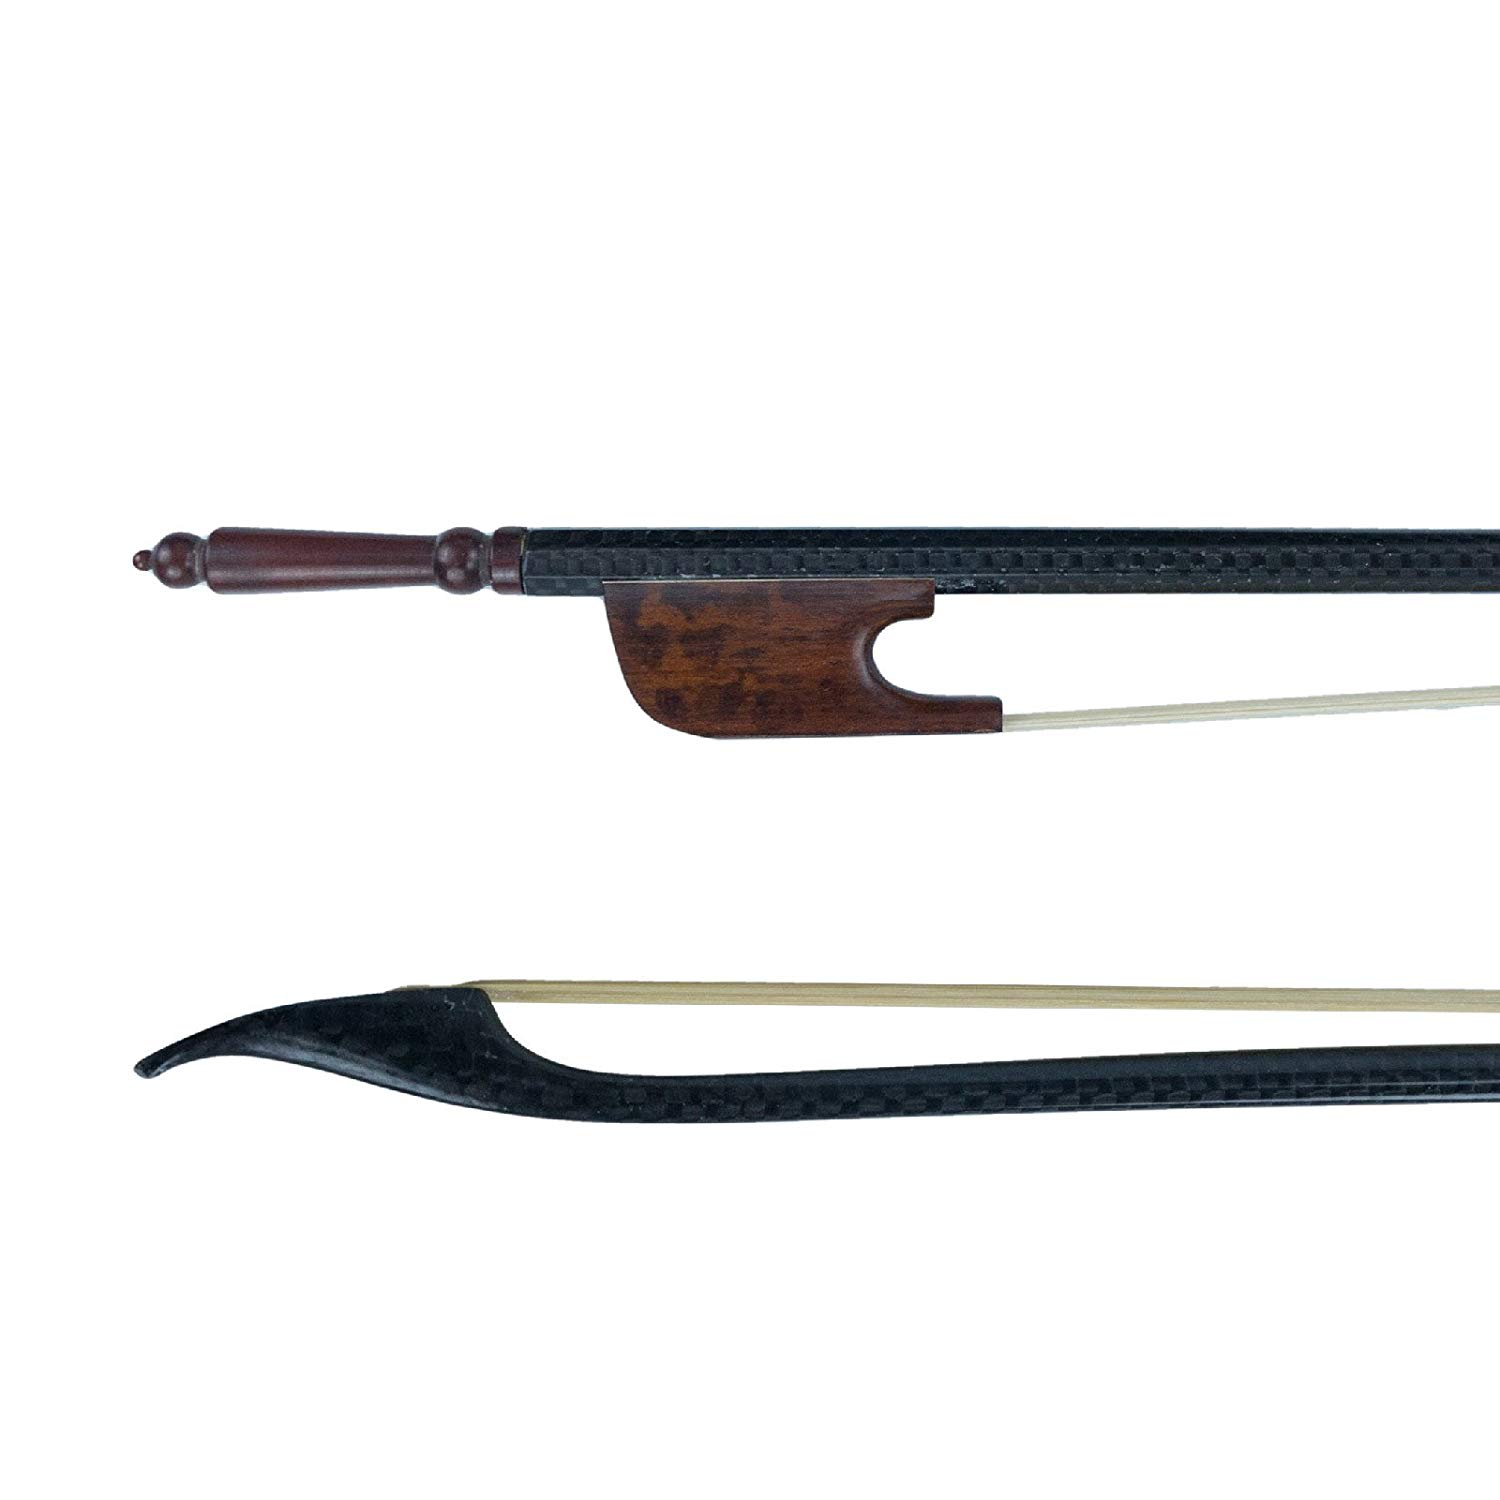 VERY STRONG Lowest Price Carbon Fiber Double Bass Bow 110BG